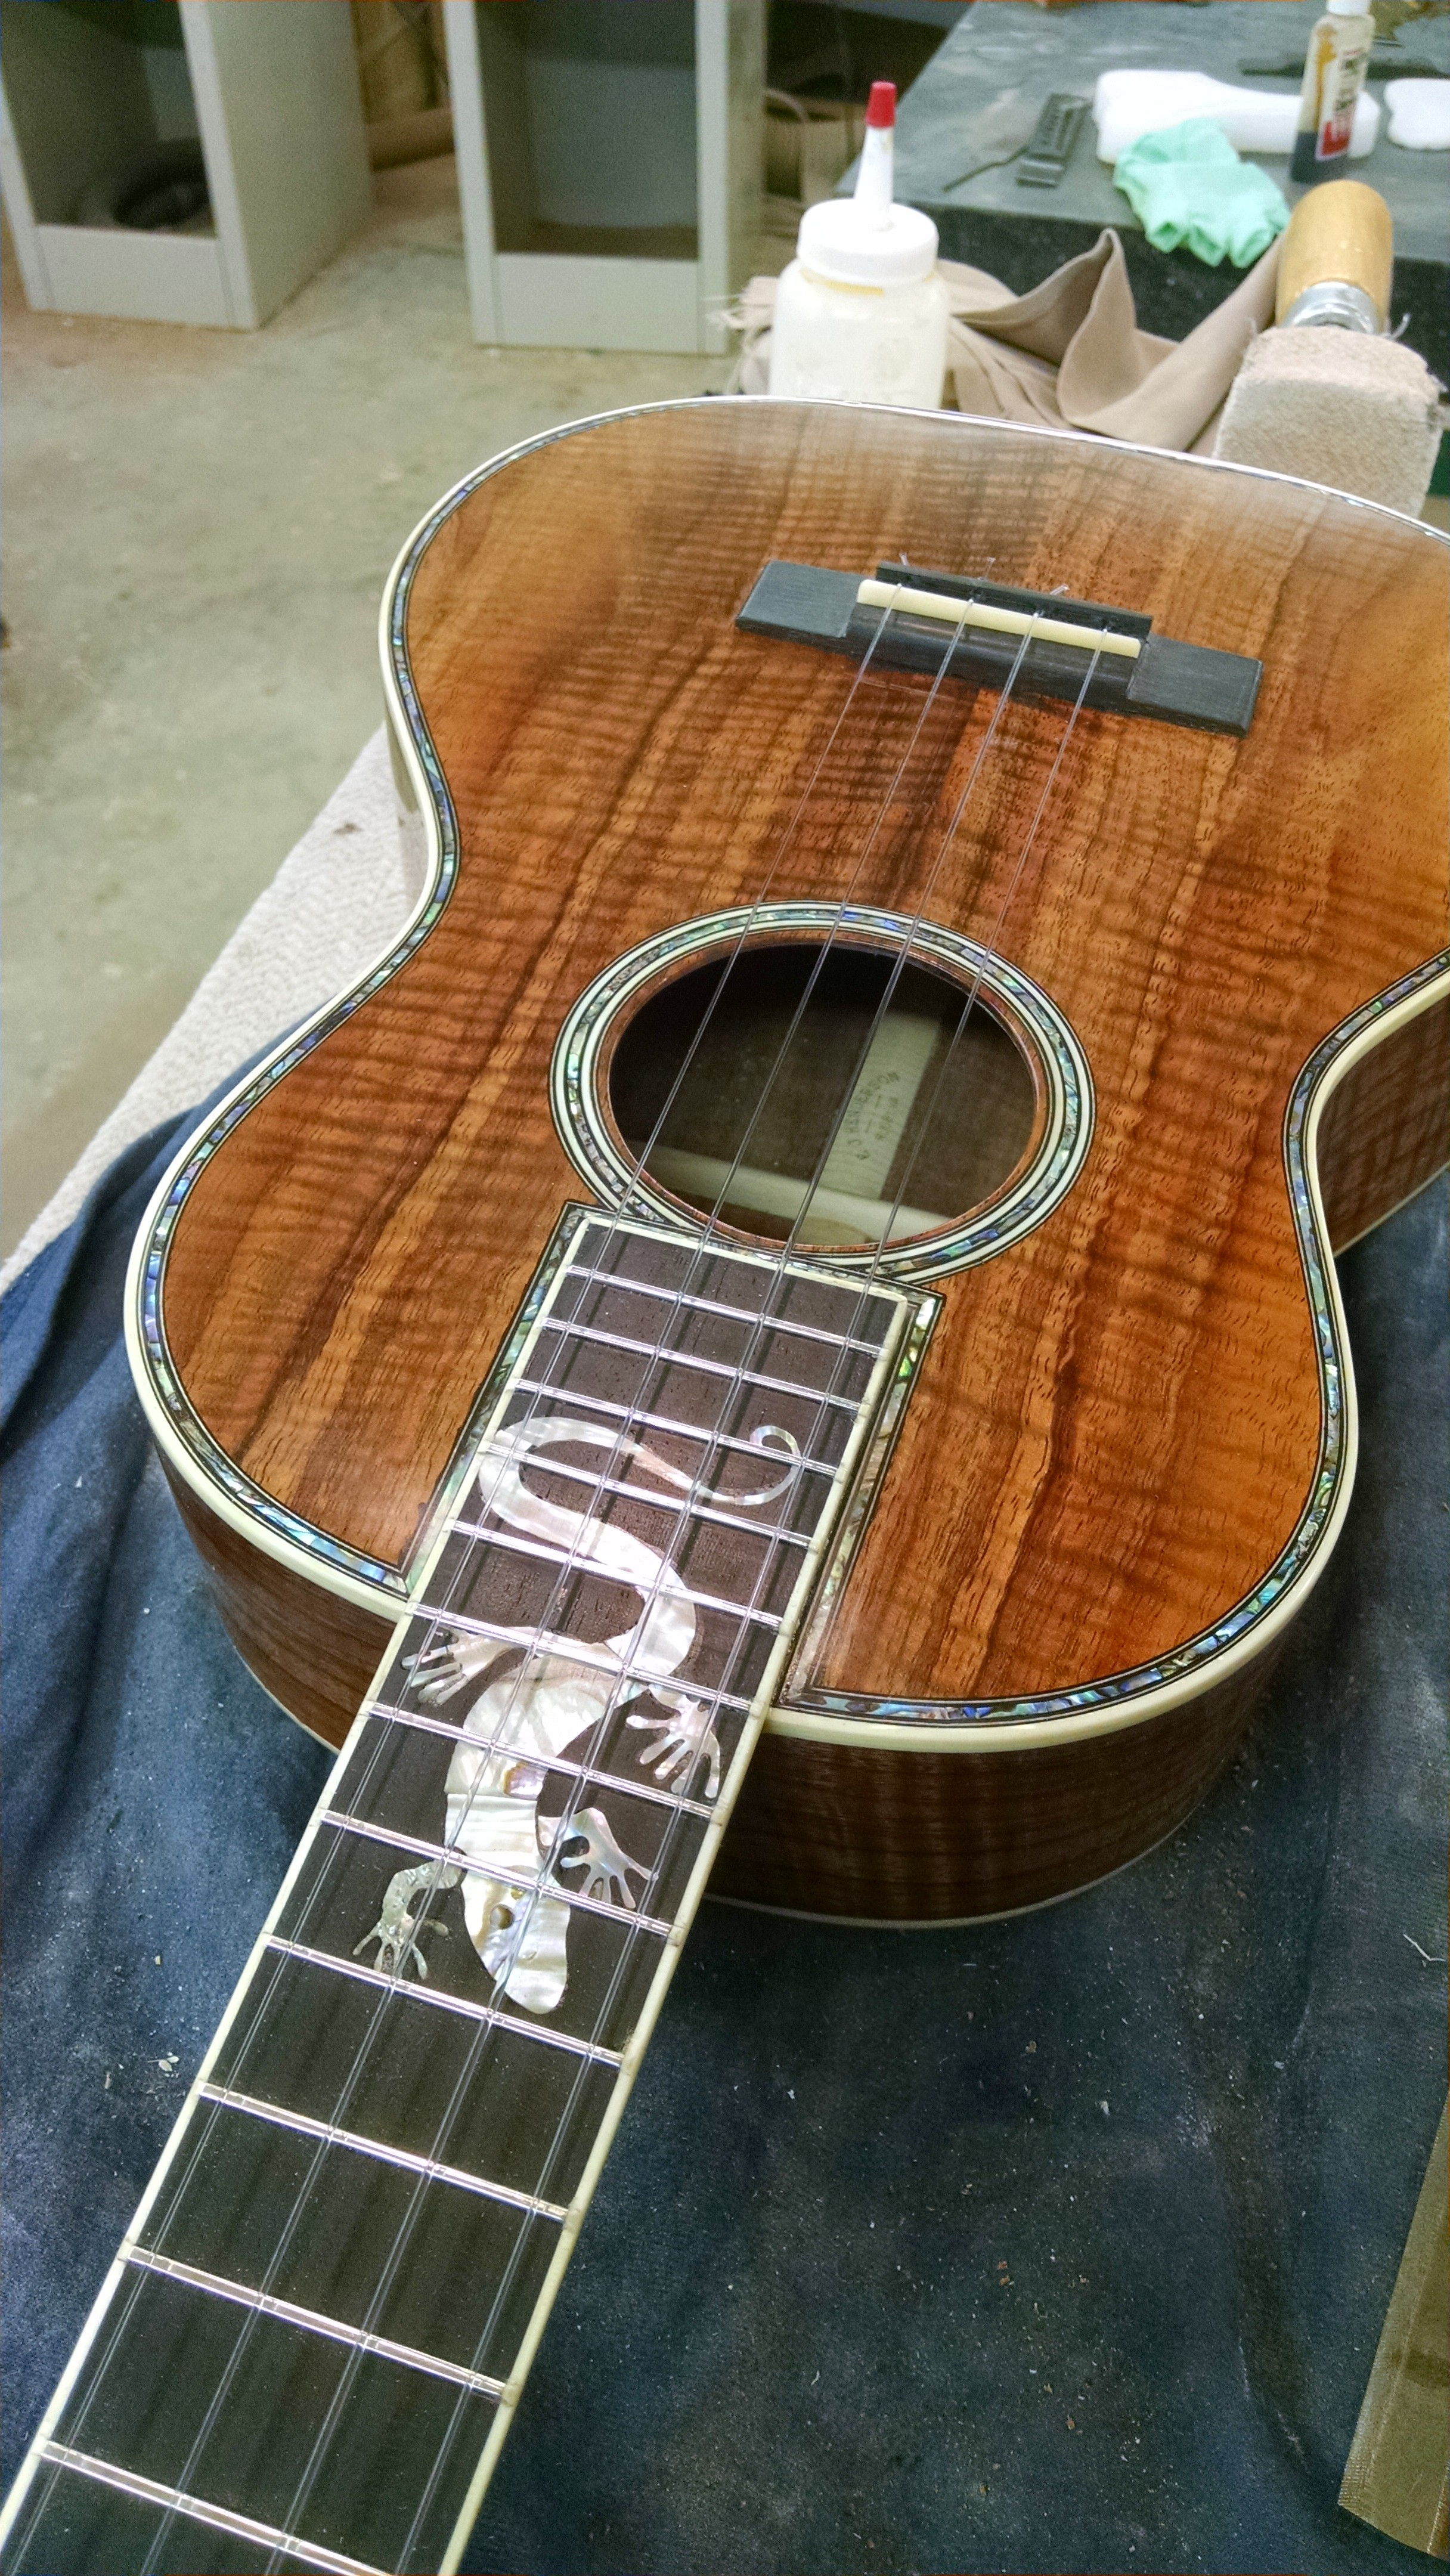 A client's beloved pet iguana, Charlotte is commemorated on the fingerboard of his ukulele.